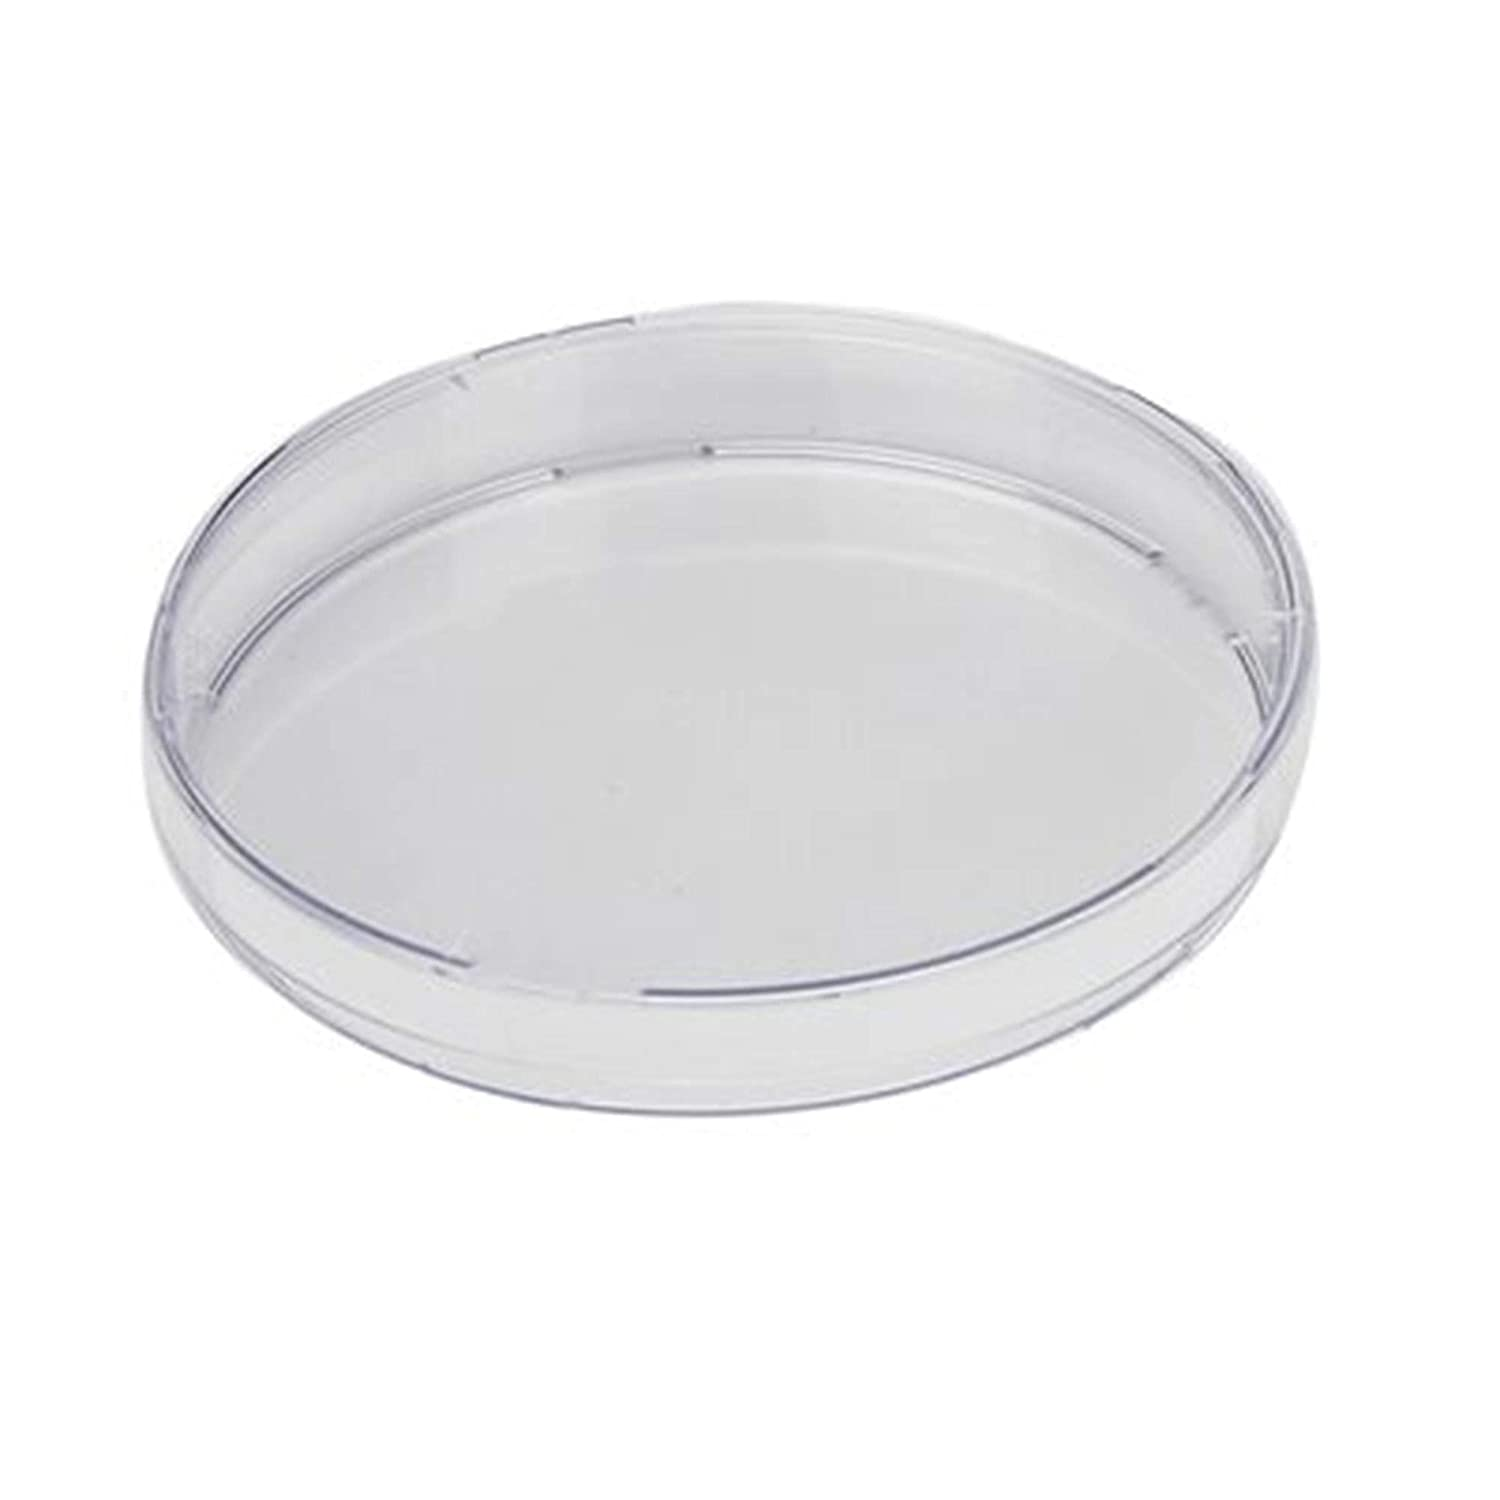 DISCOVERY LABWARE 354492 Polyethylene Terephthalate Fibronectin Cellware Insert in 4 x 12 Well Plates 3 /µm Membrane Pore Size